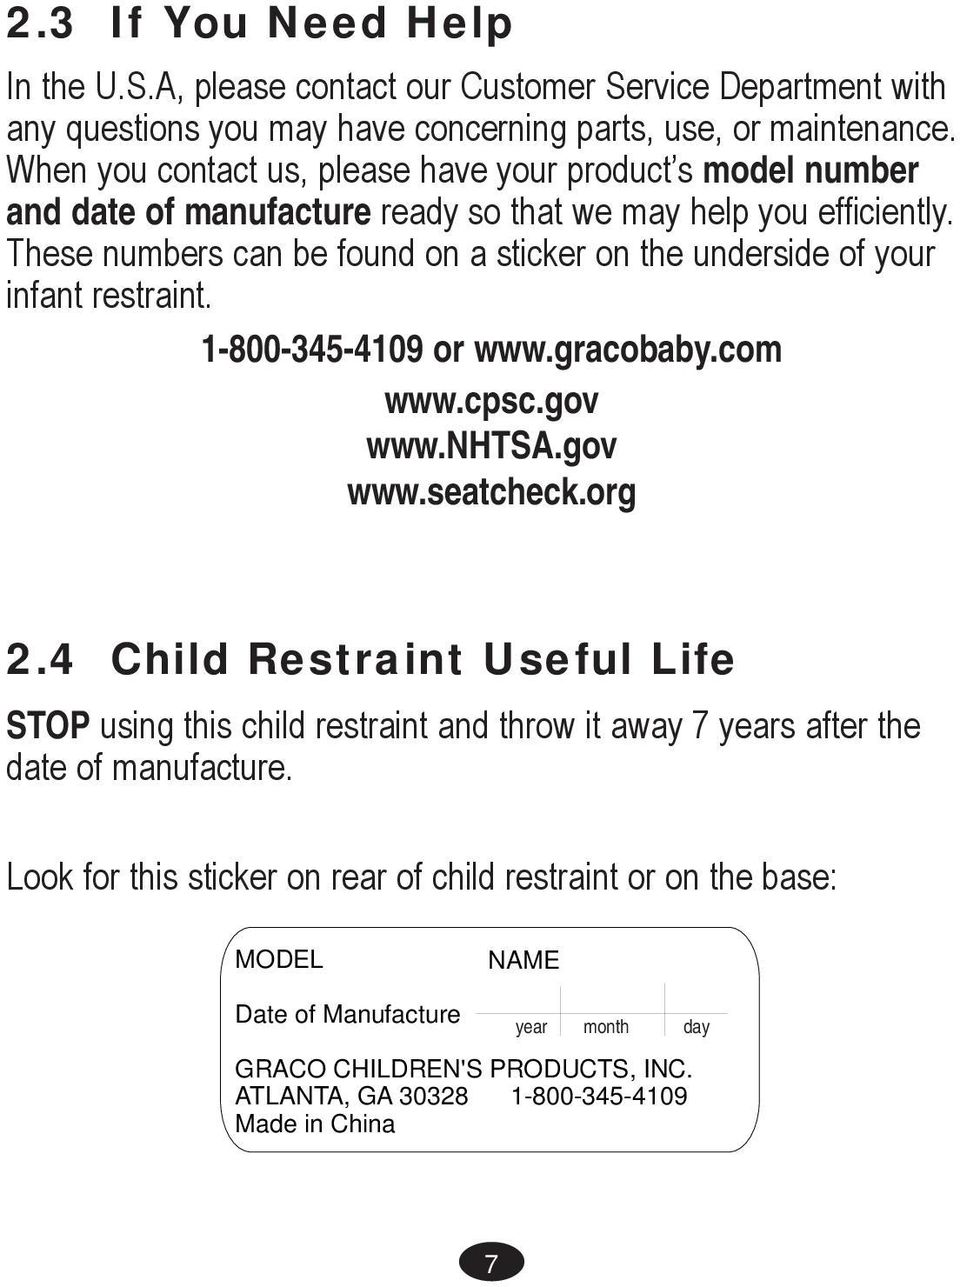 These numbers can be found on a sticker on the underside of your infant restraint. 1-800-345-4109 or www.gracobaby.com www.cpsc.gov www.nhtsa.gov www.seatcheck.org 2.